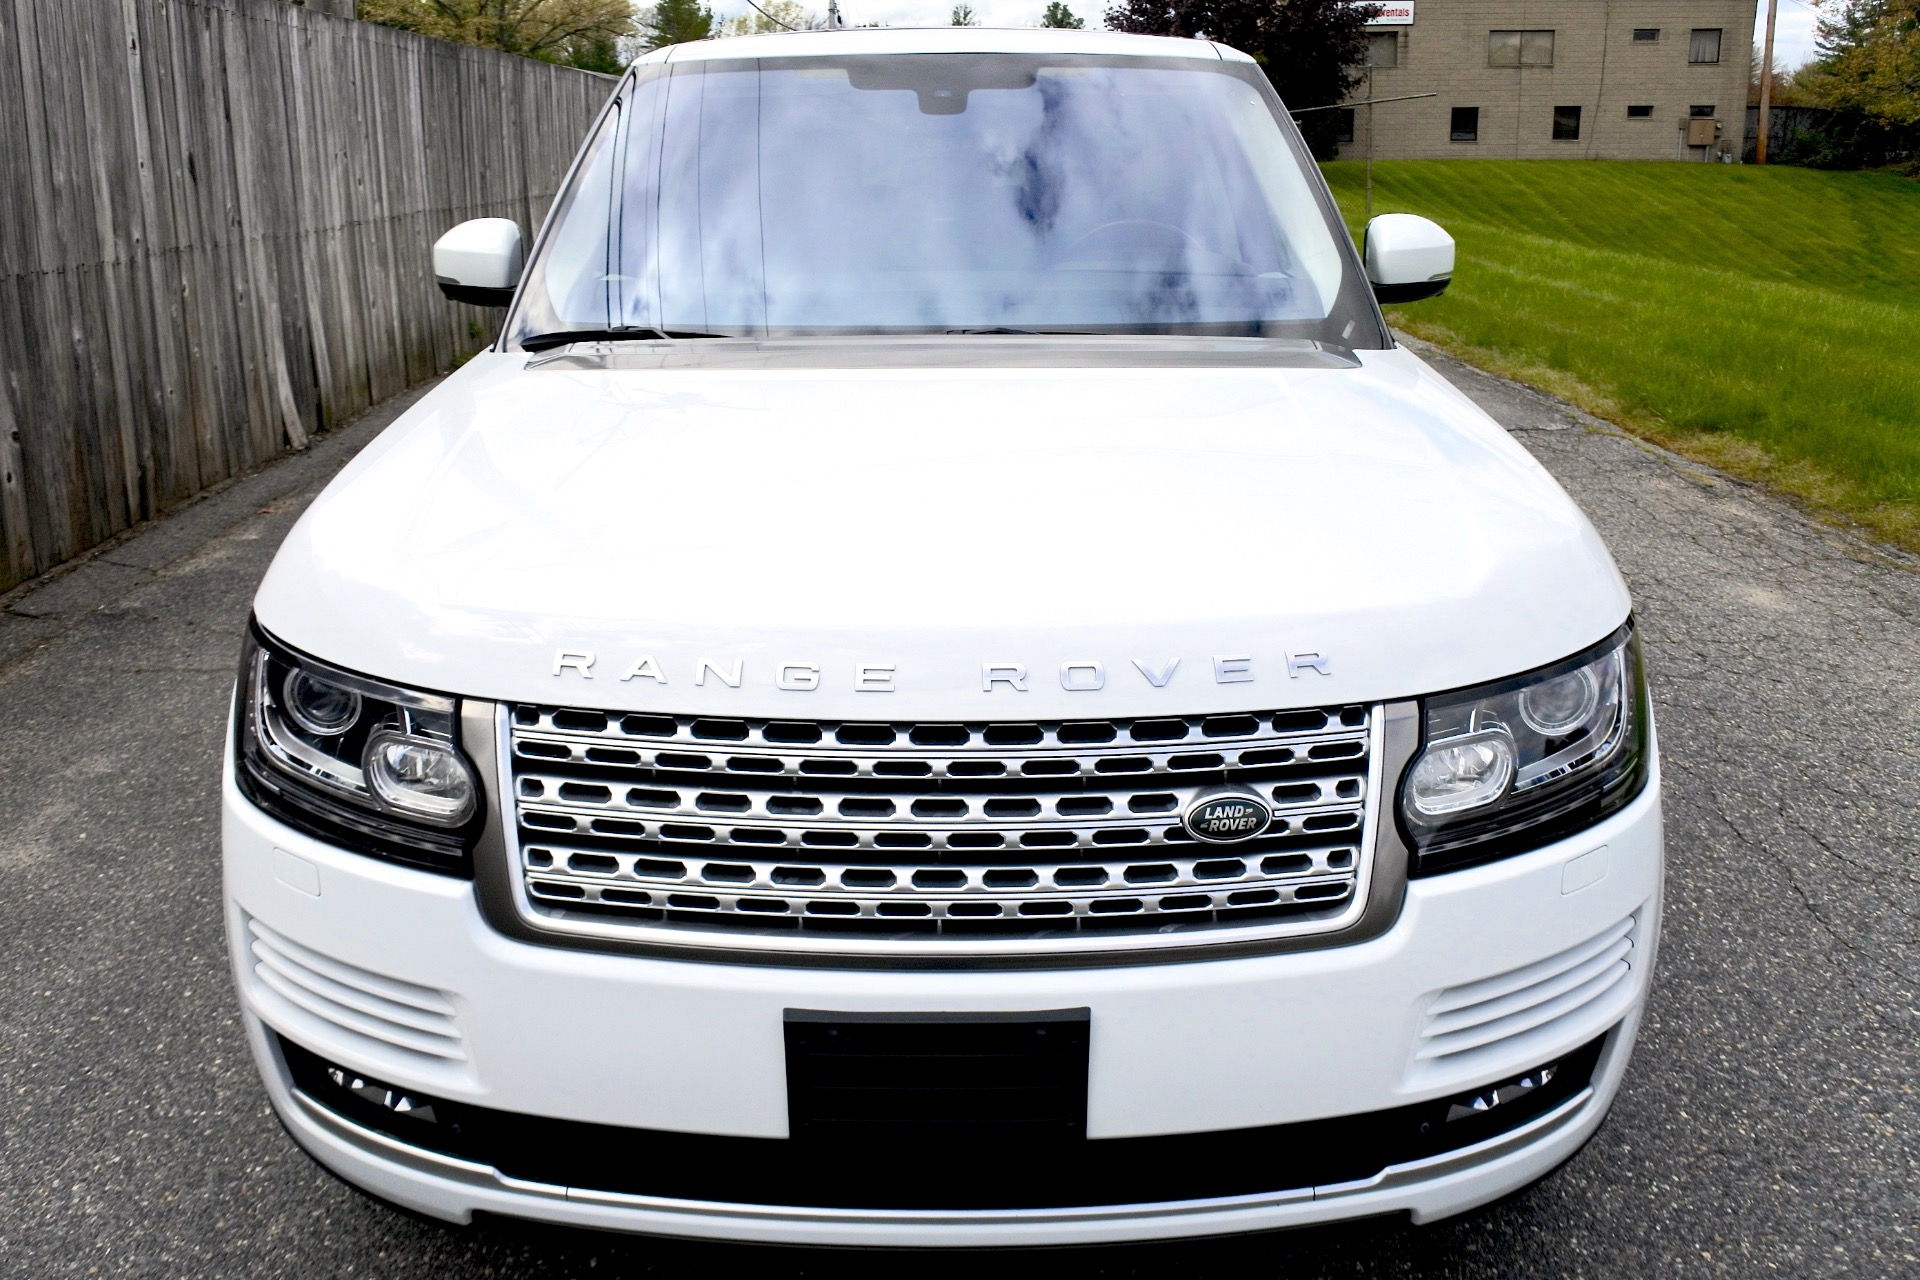 Used 2015 Land Rover Range Rover 4WD 4dr Supercharged Used 2015 Land Rover Range Rover 4WD 4dr Supercharged for sale  at Metro West Motorcars LLC in Shrewsbury MA 8